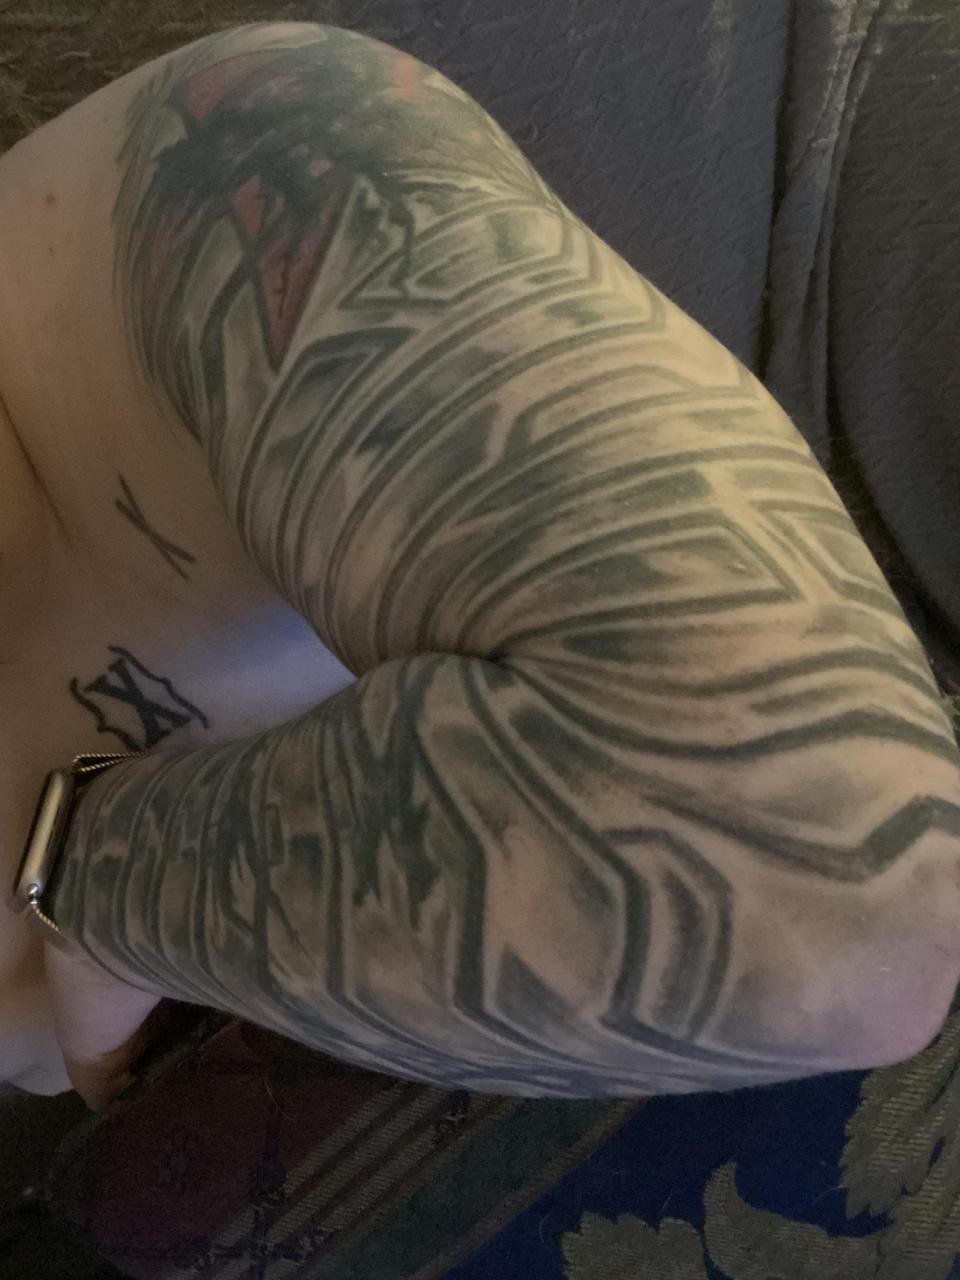 Winter Soldier arm - in progress, almost done! - Mack Young, Nighthawk Tattoo, Guelph ON